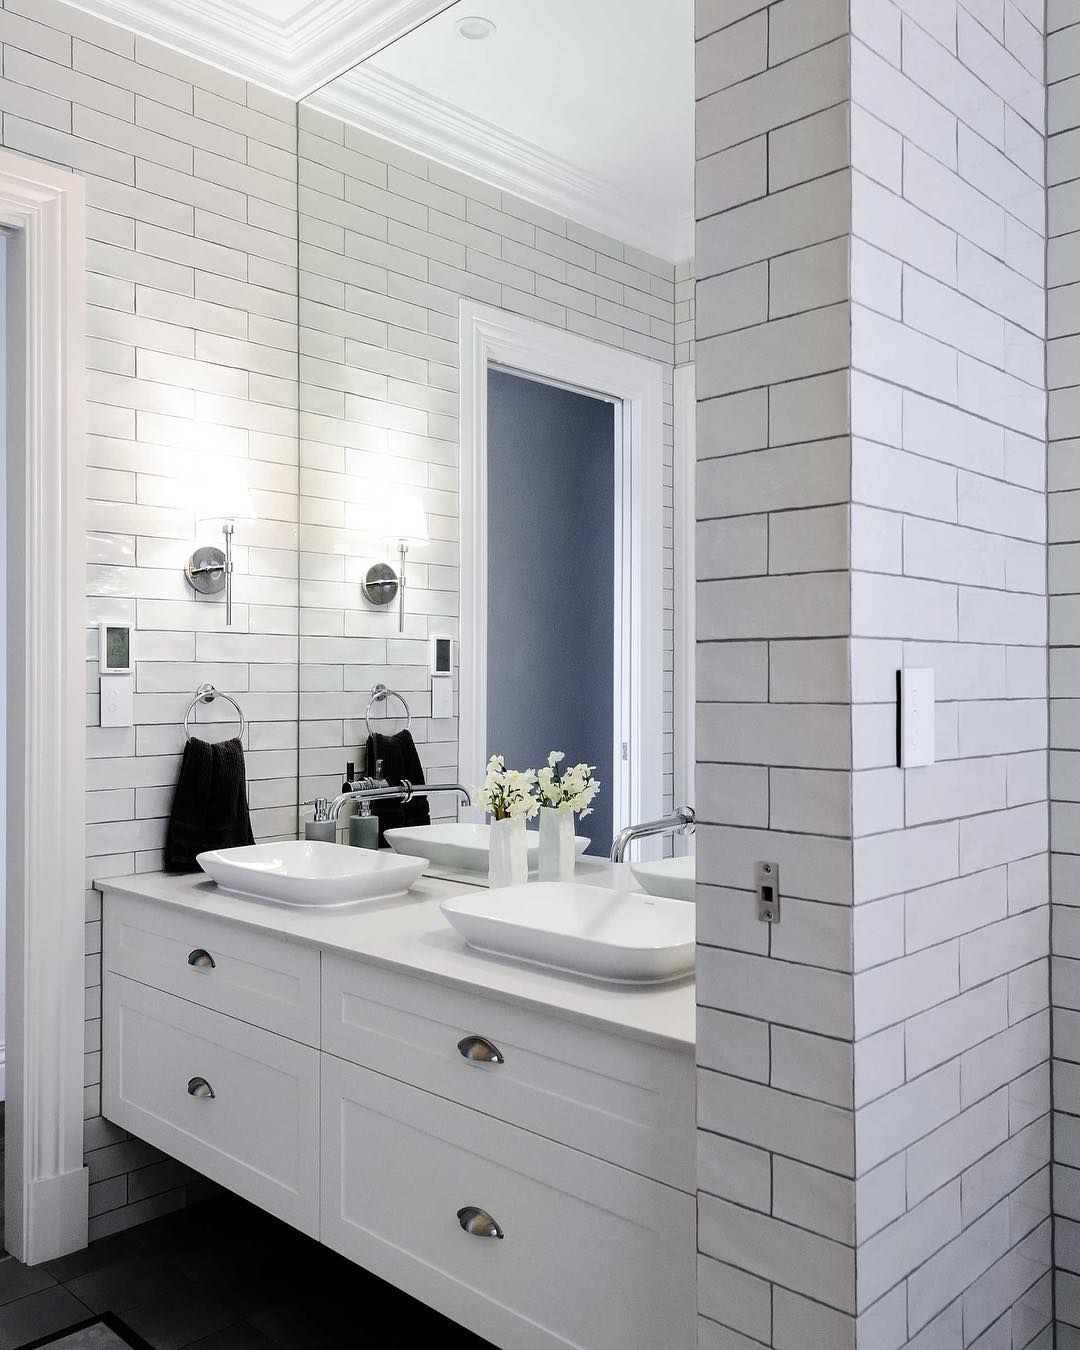 Dulux Bathroom Ideas 15 - Home Comforts